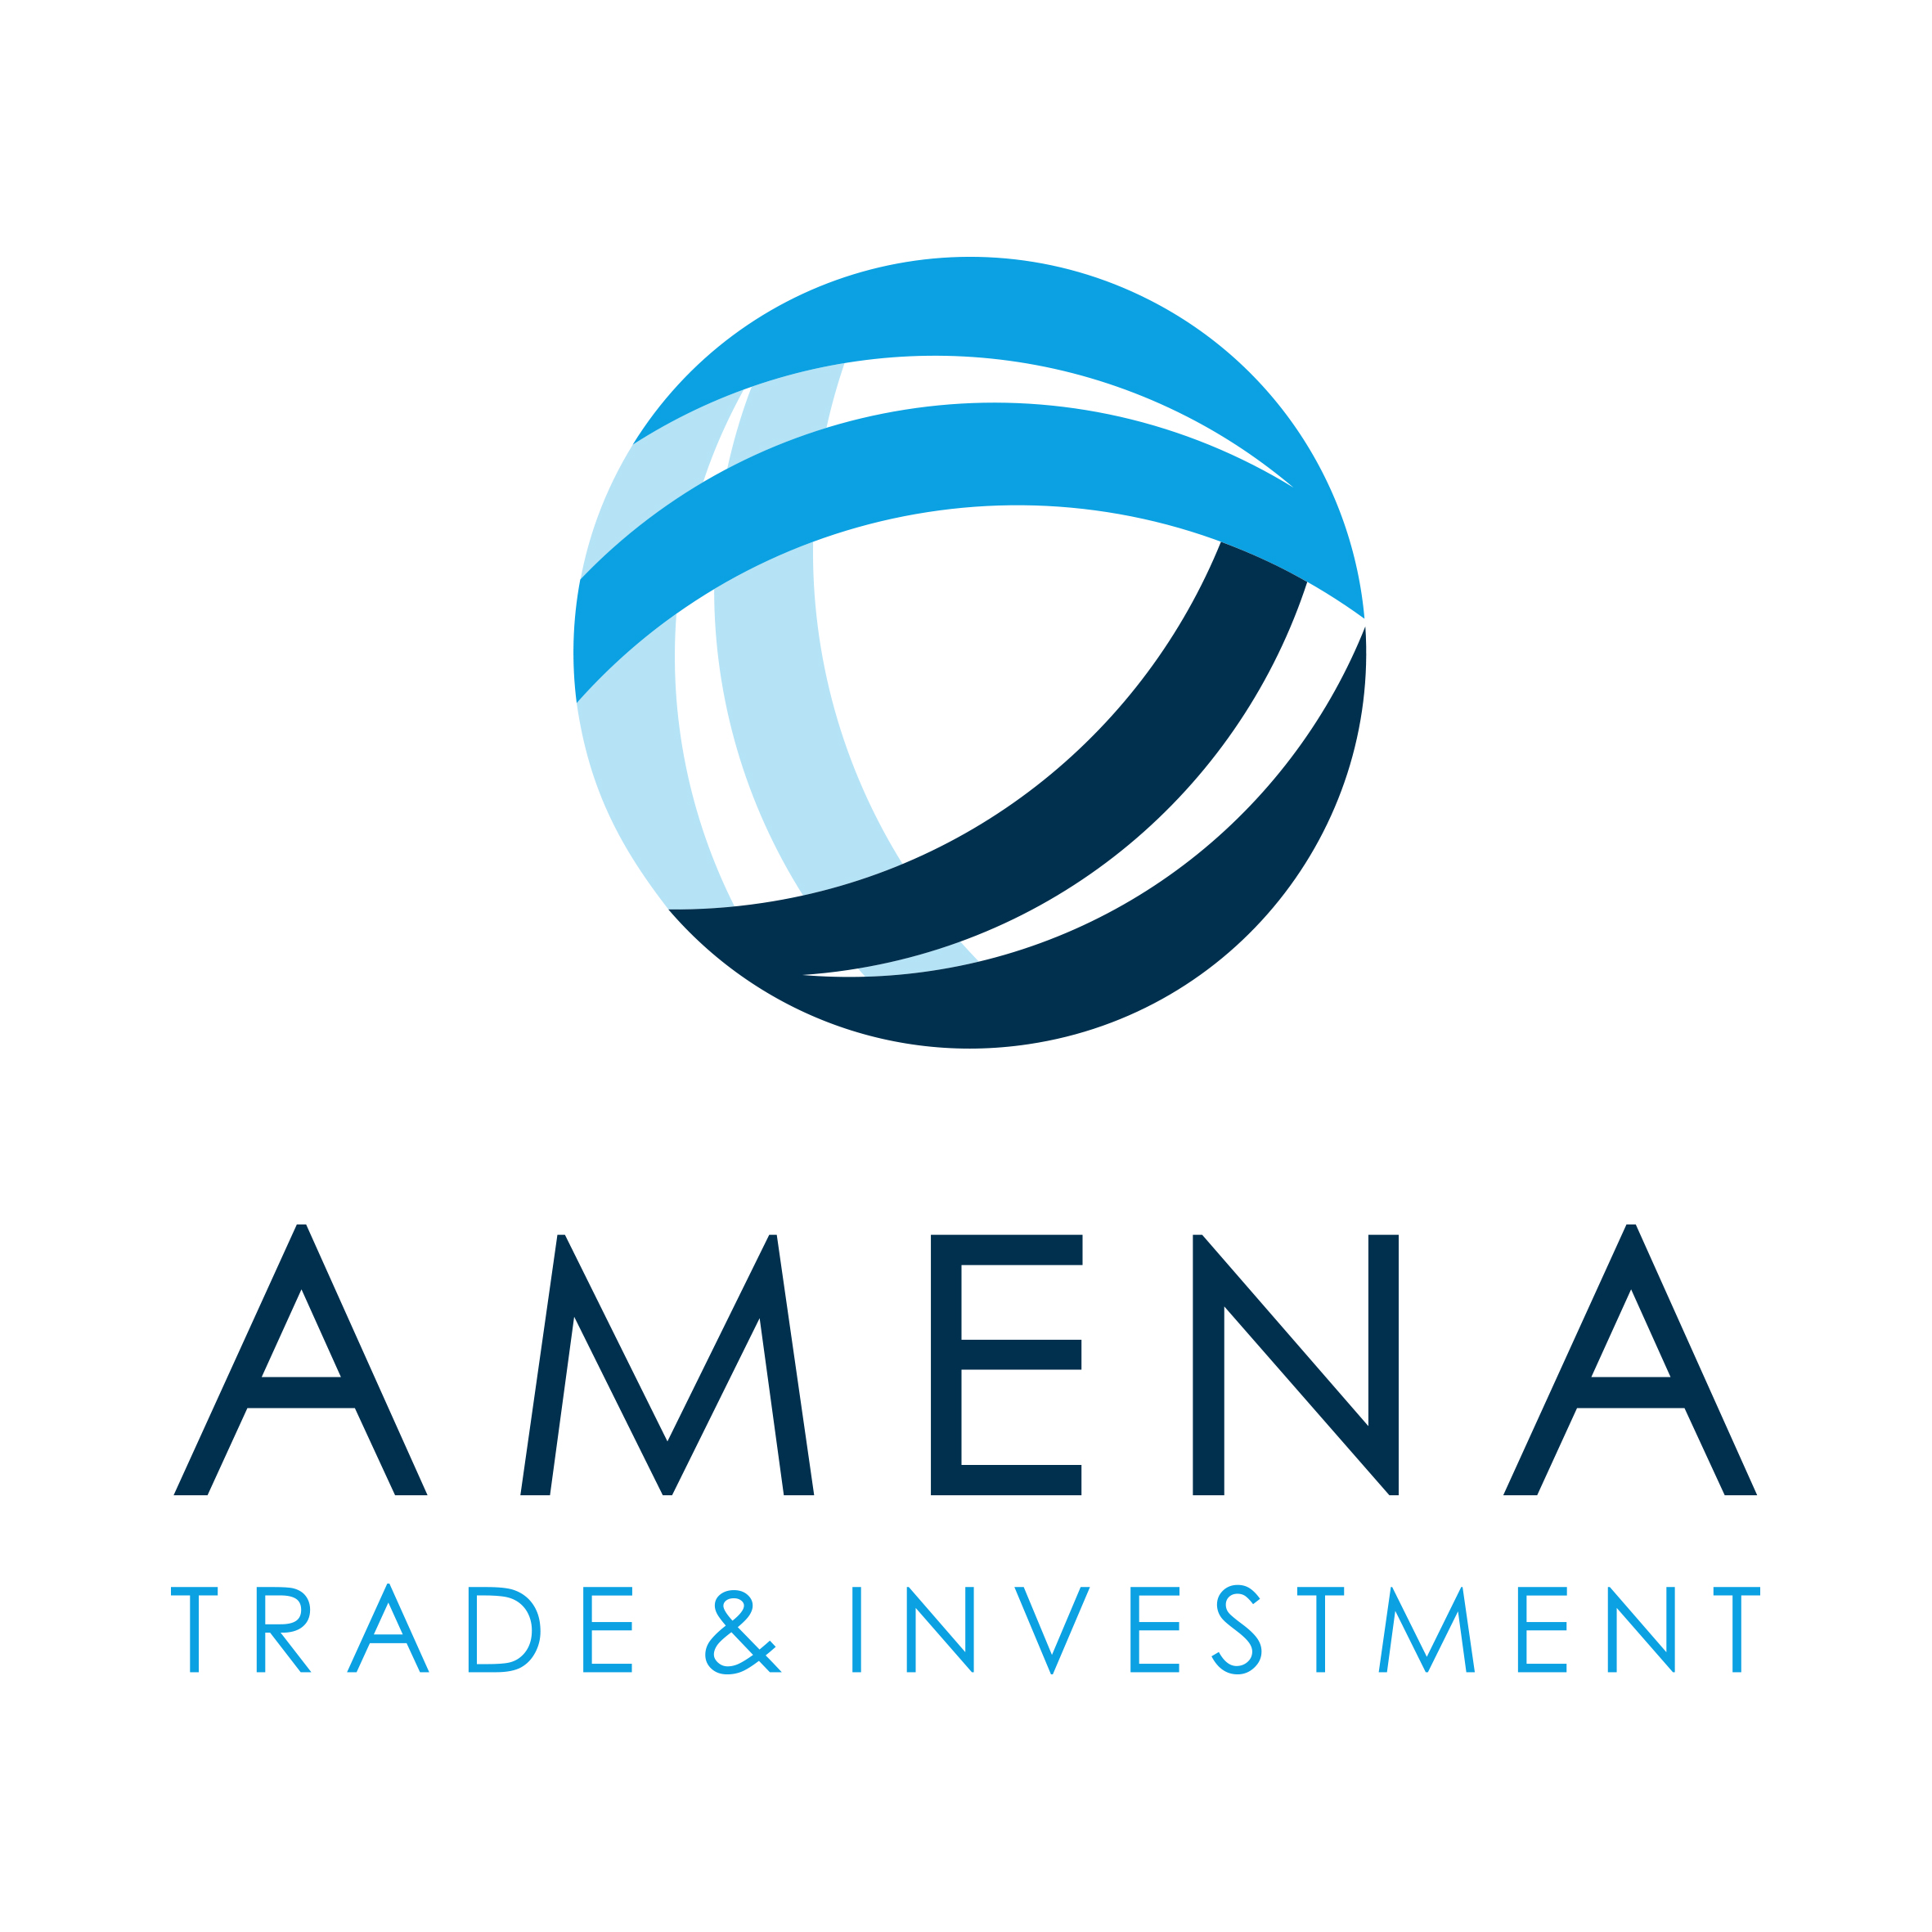 AMENA Trade & Investment lgoo